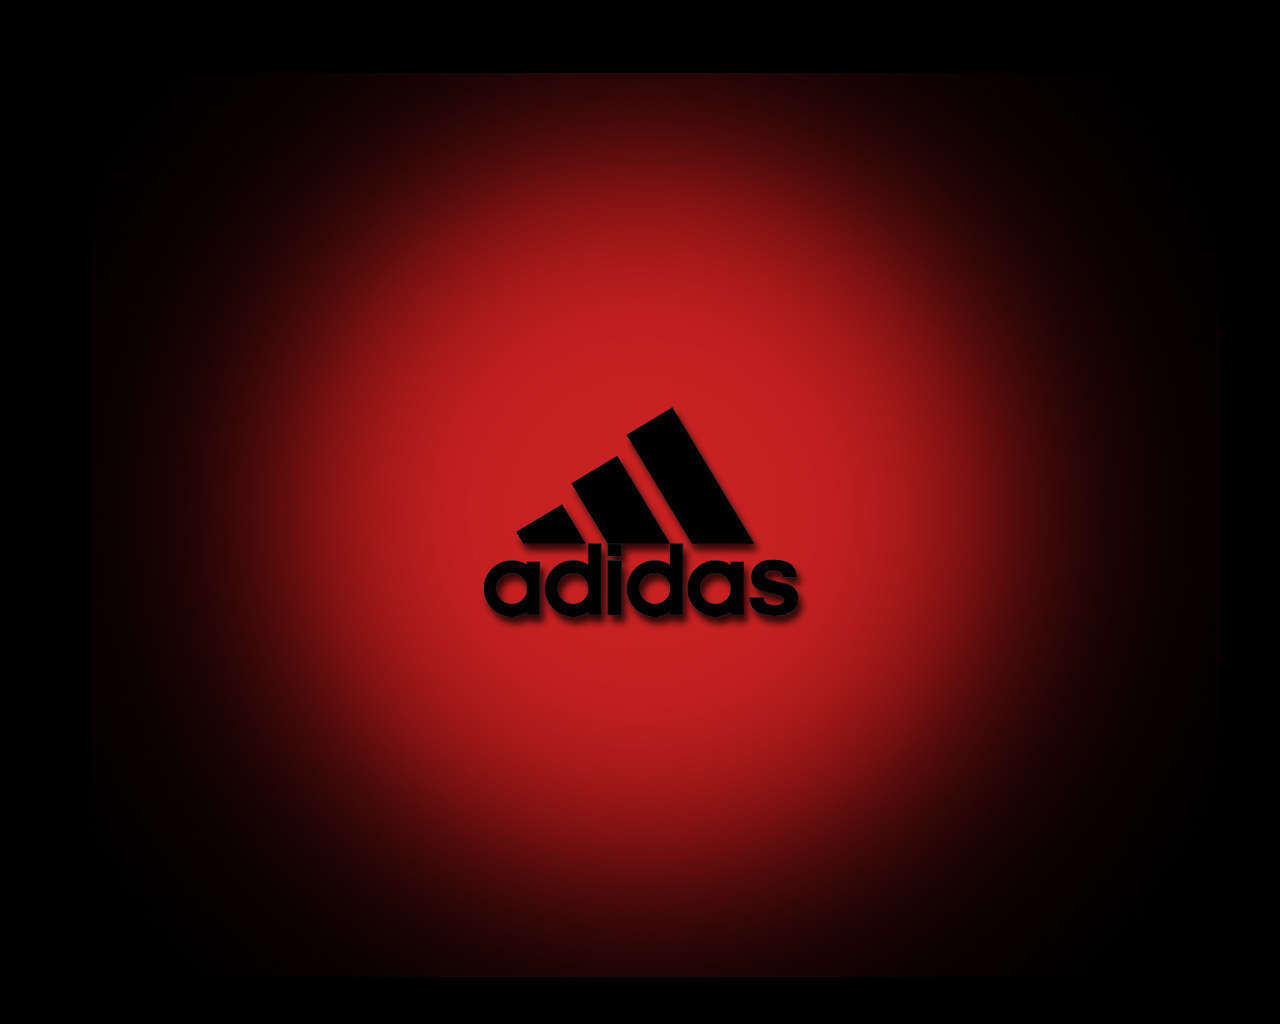 Adidas 2015 Wallpaper - WallpaperSafari